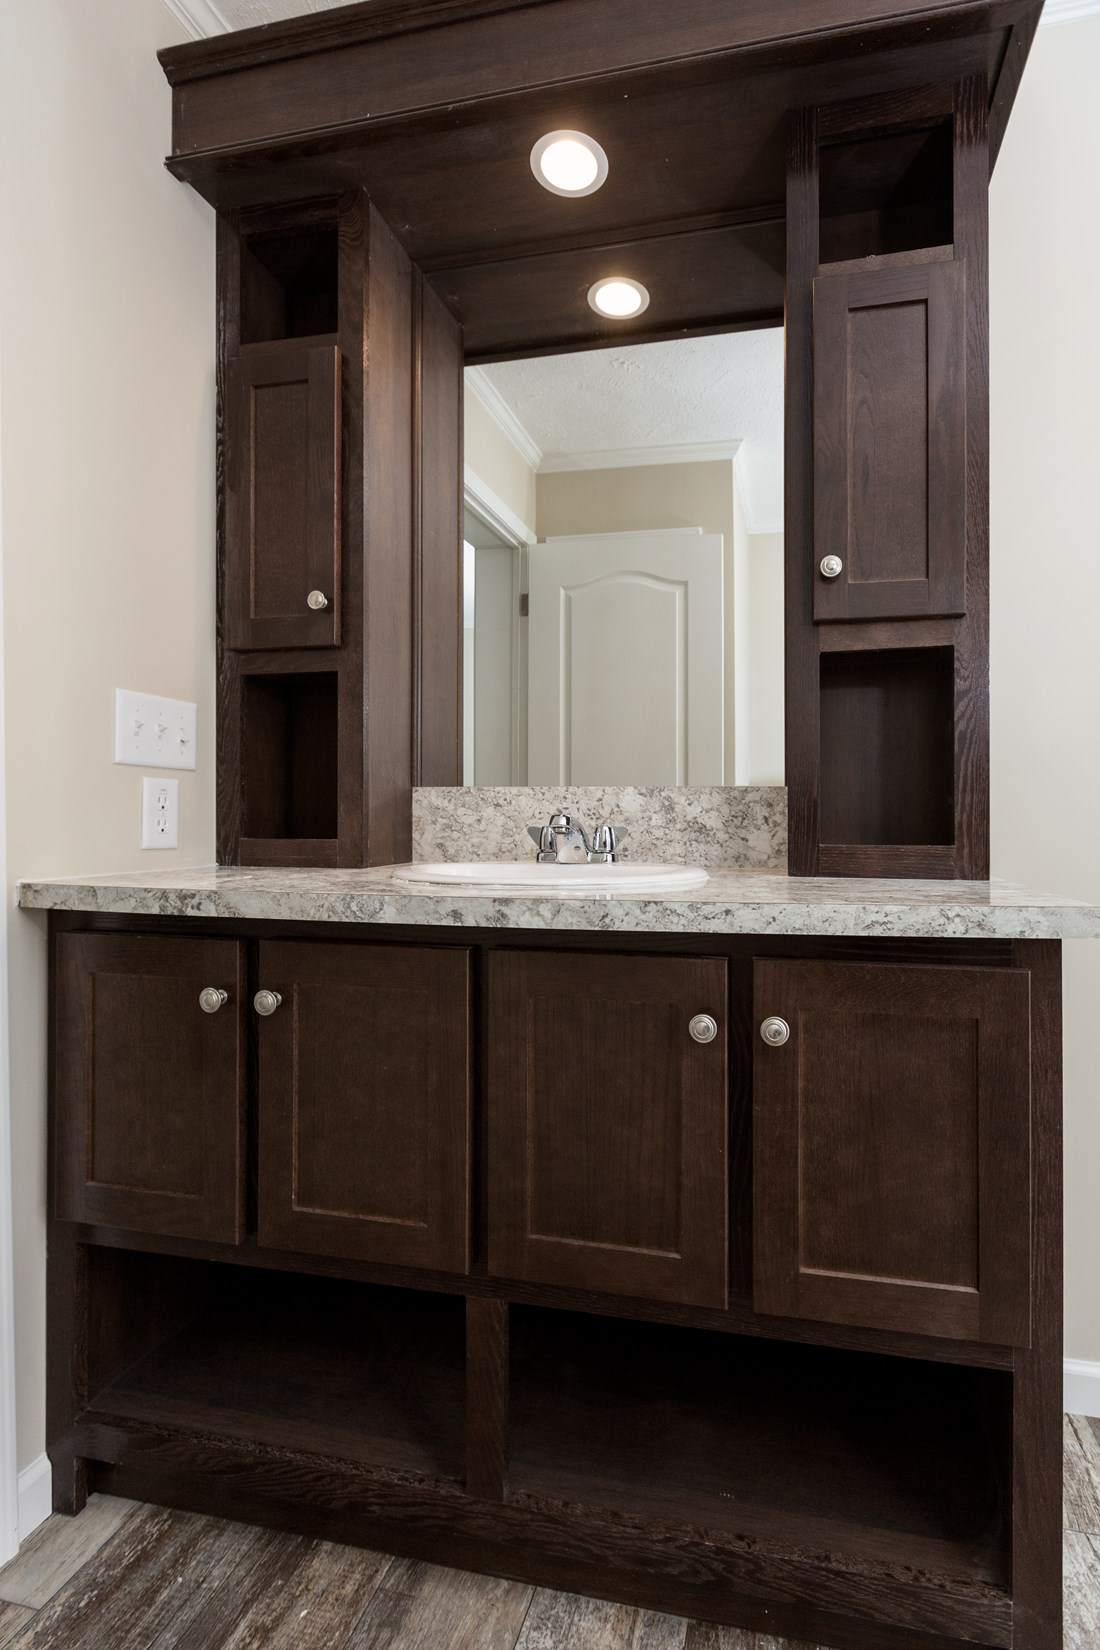 The HYDE PARK 5228-508-1 Master Bathroom. This Manufactured Mobile Home features 3 bedrooms and 2 baths.